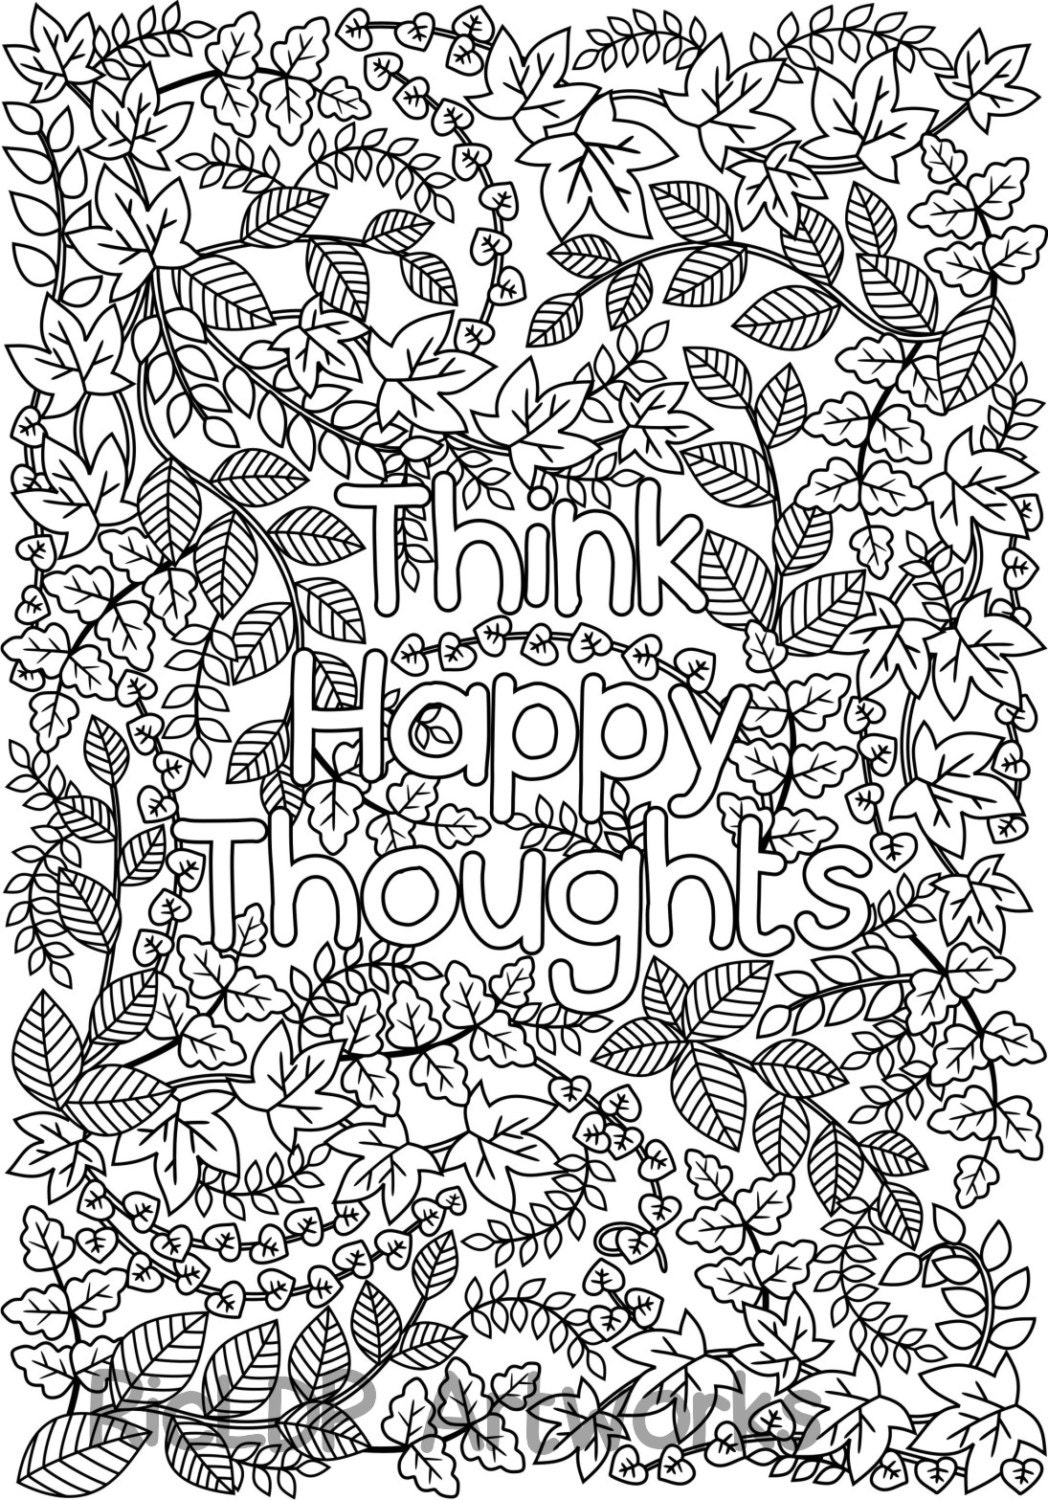 Printable 39 Think Happy Thoughts 39 coloring page for